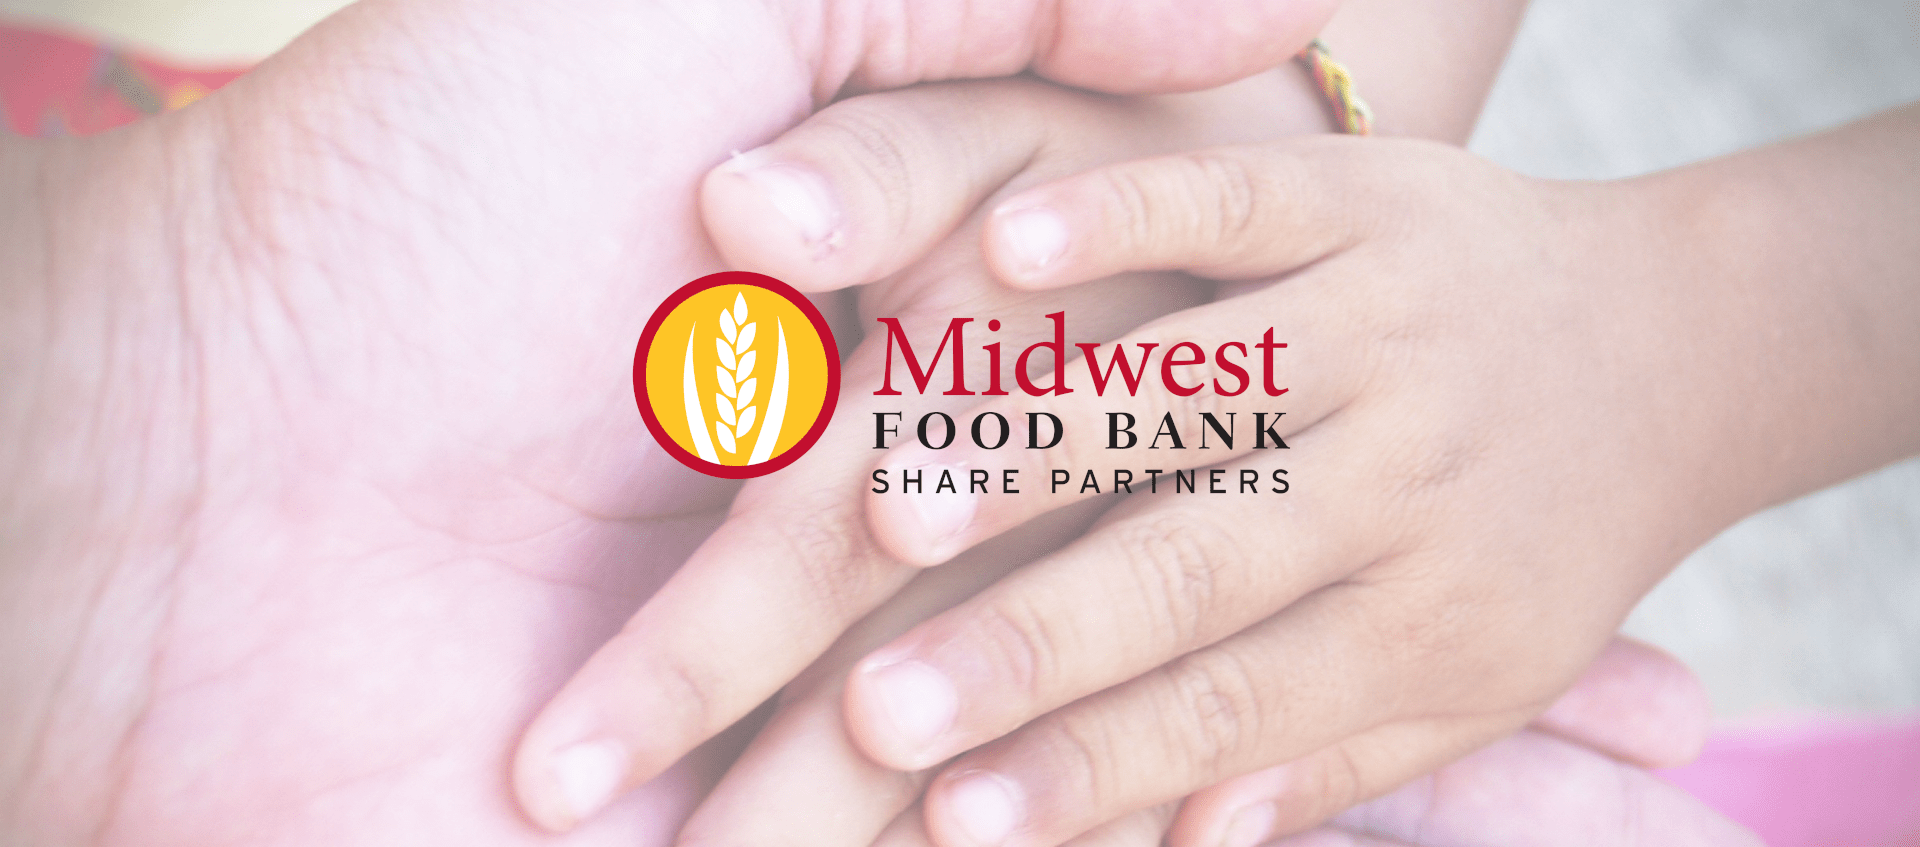 Midwest Food Bank Share Partners